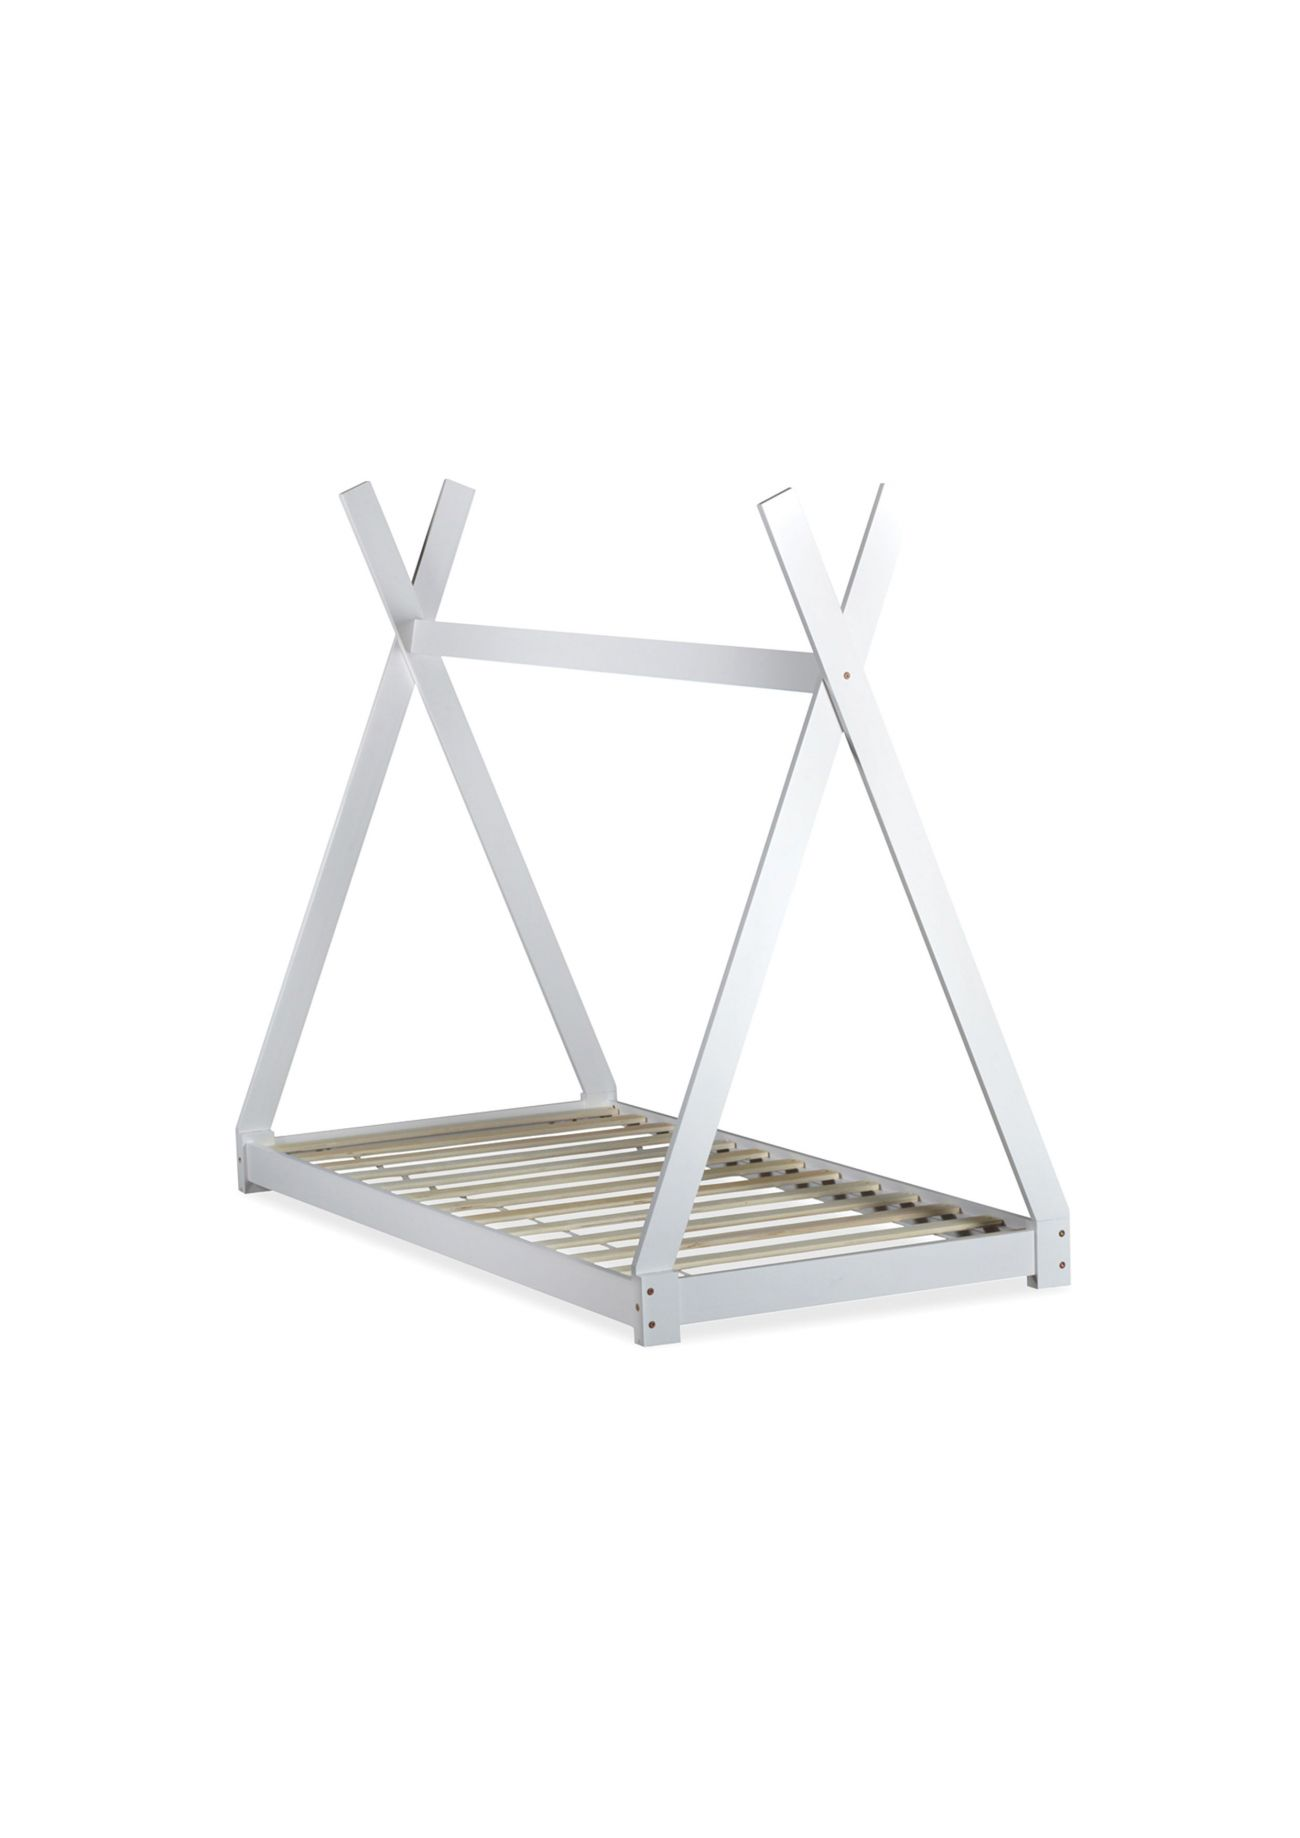 Sommiers LIT TIPI BLANC 0